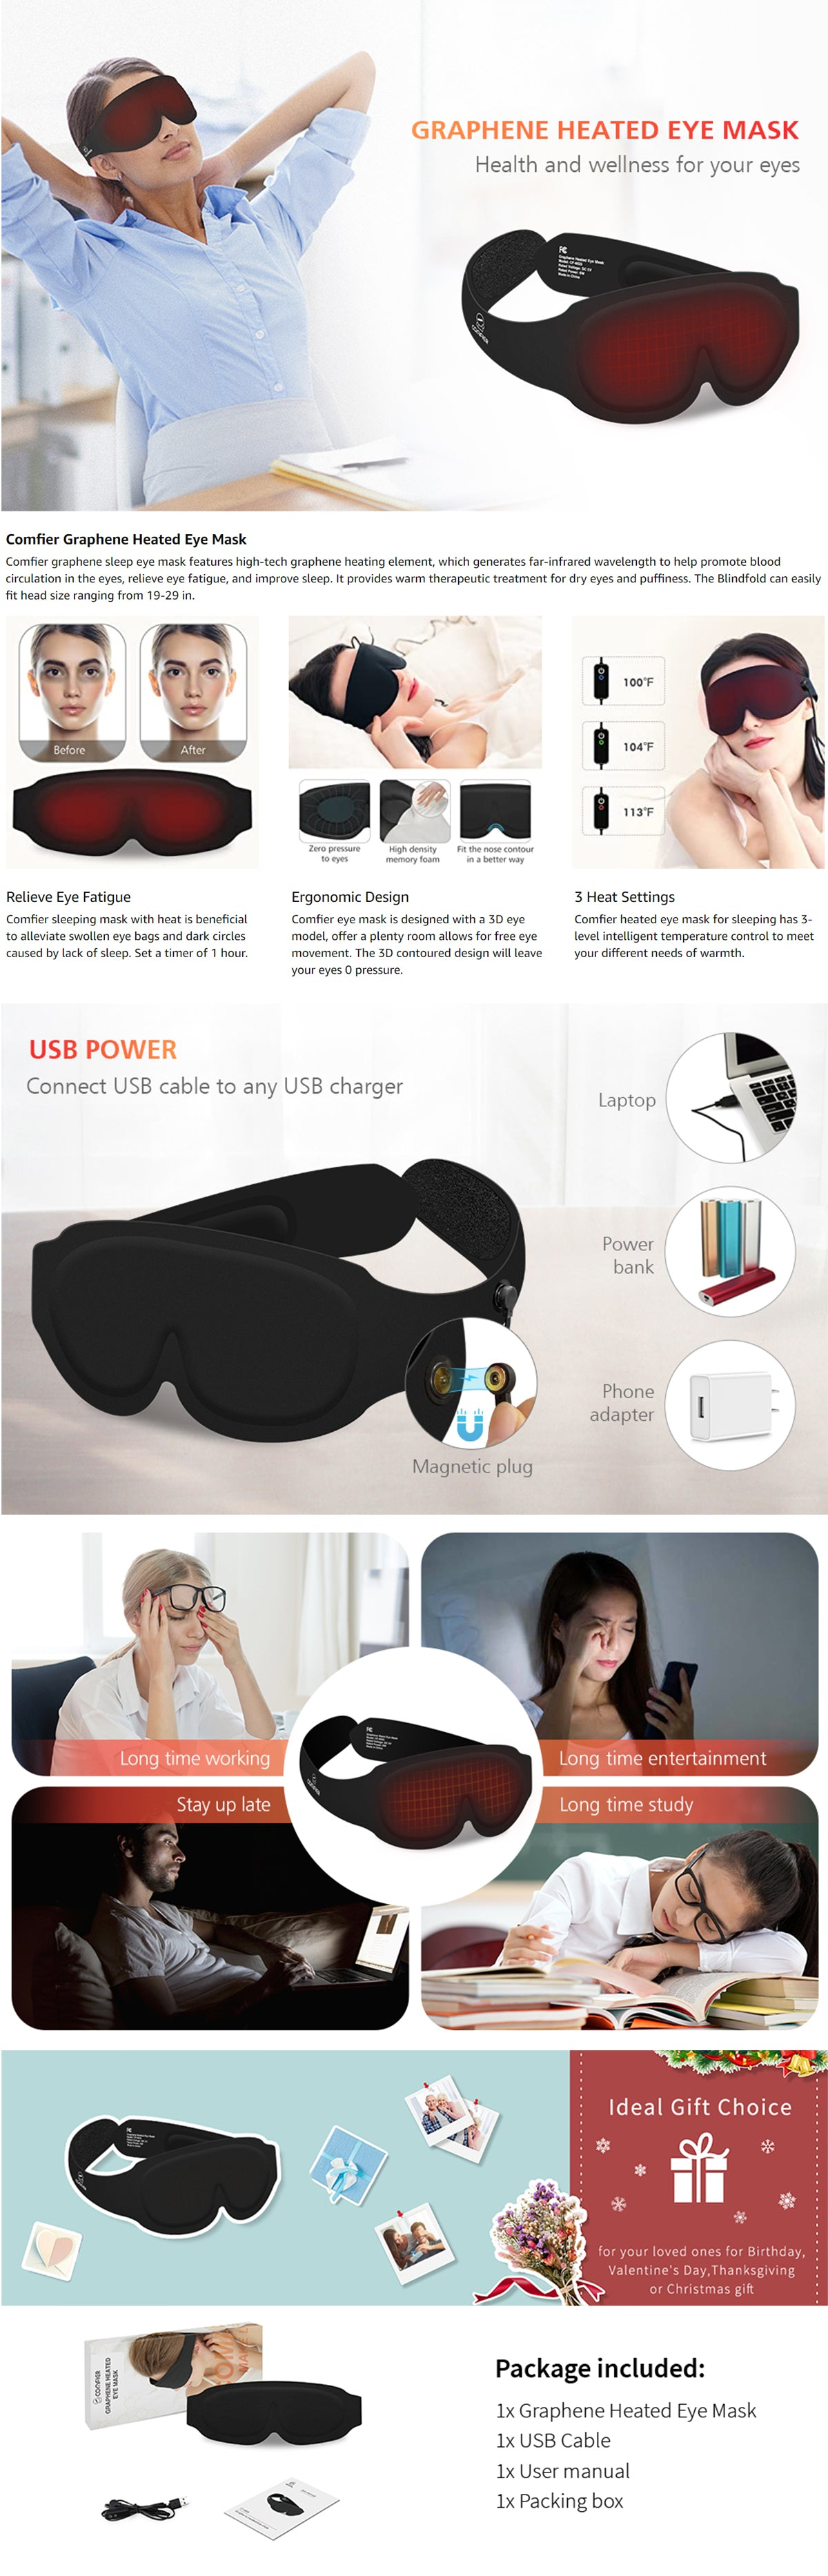 Comfier Graphene Heated Eye Mask, Sleep Mask for Women,Men, 3 Heat Settings Eye Massager with Heat, Warm Therapy Sleep Marks for Dark Circles, Block Out Light, Eye Shade Cover for Travel